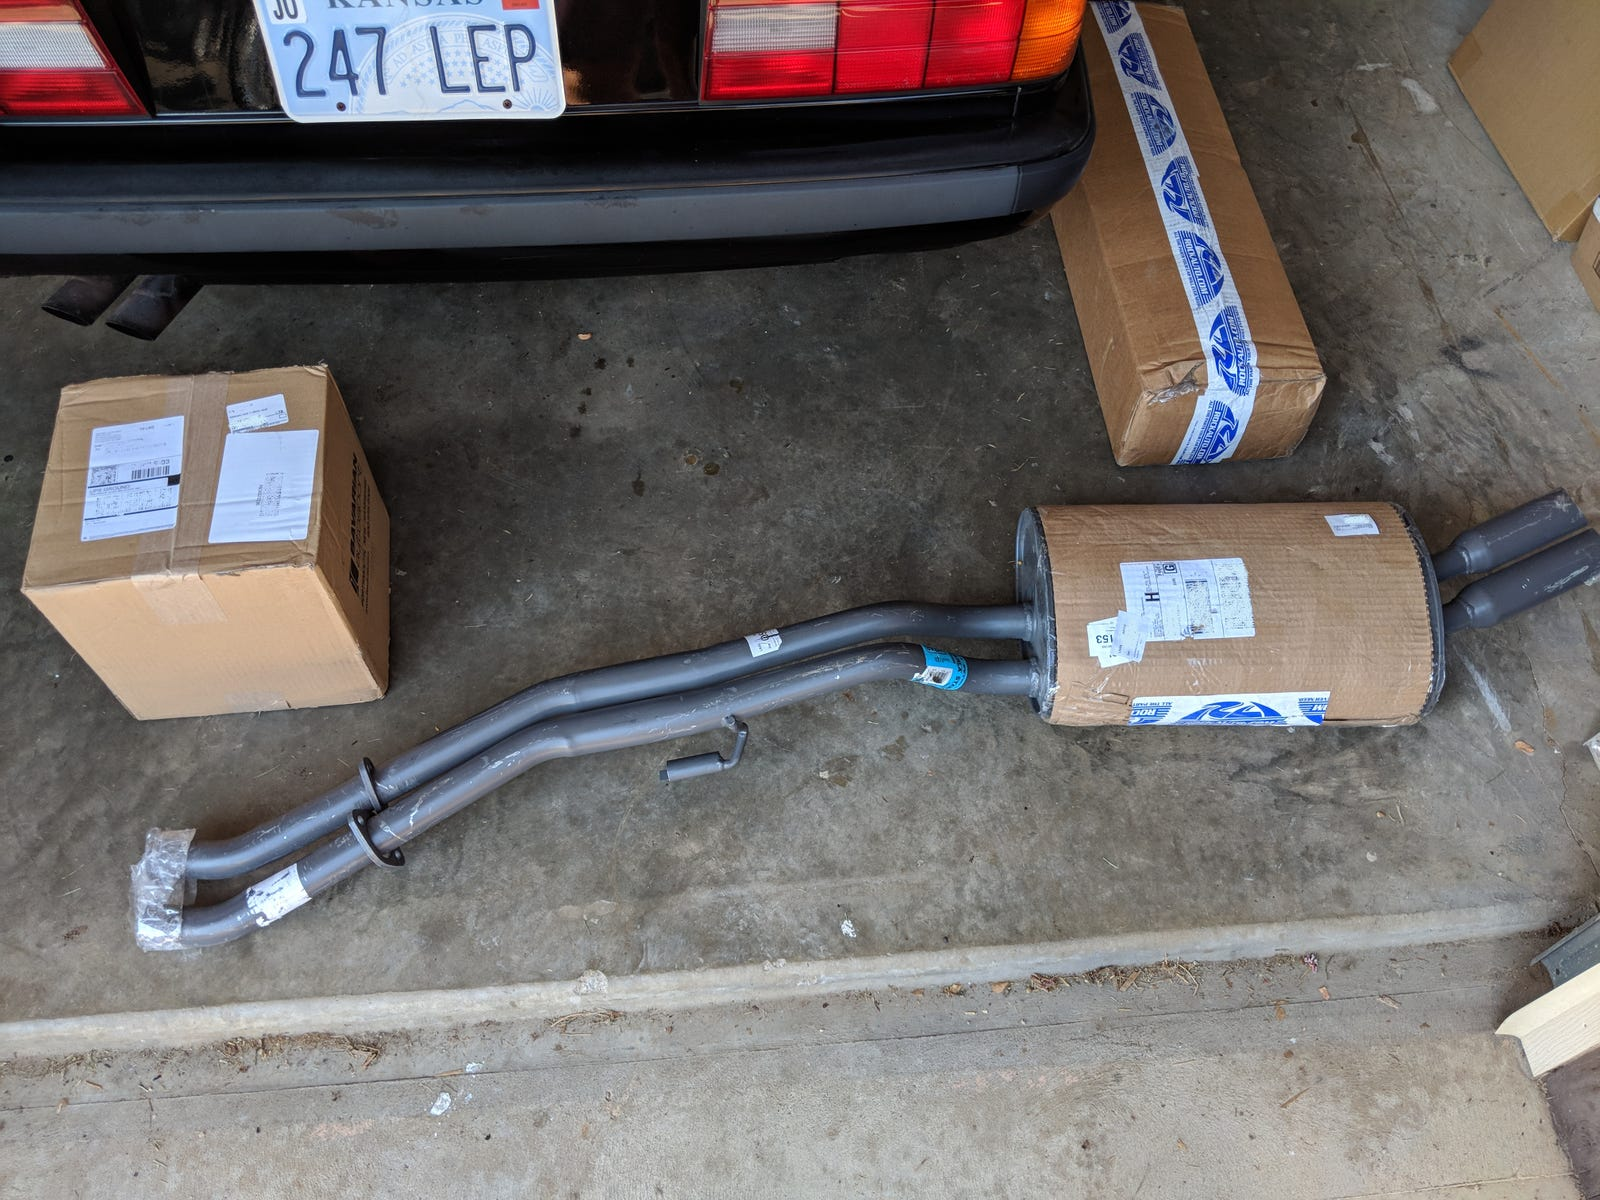 A new muffler! The minimalist packaging welcomed a dent to occur during shipping. Oh well, it's under the car anyway.